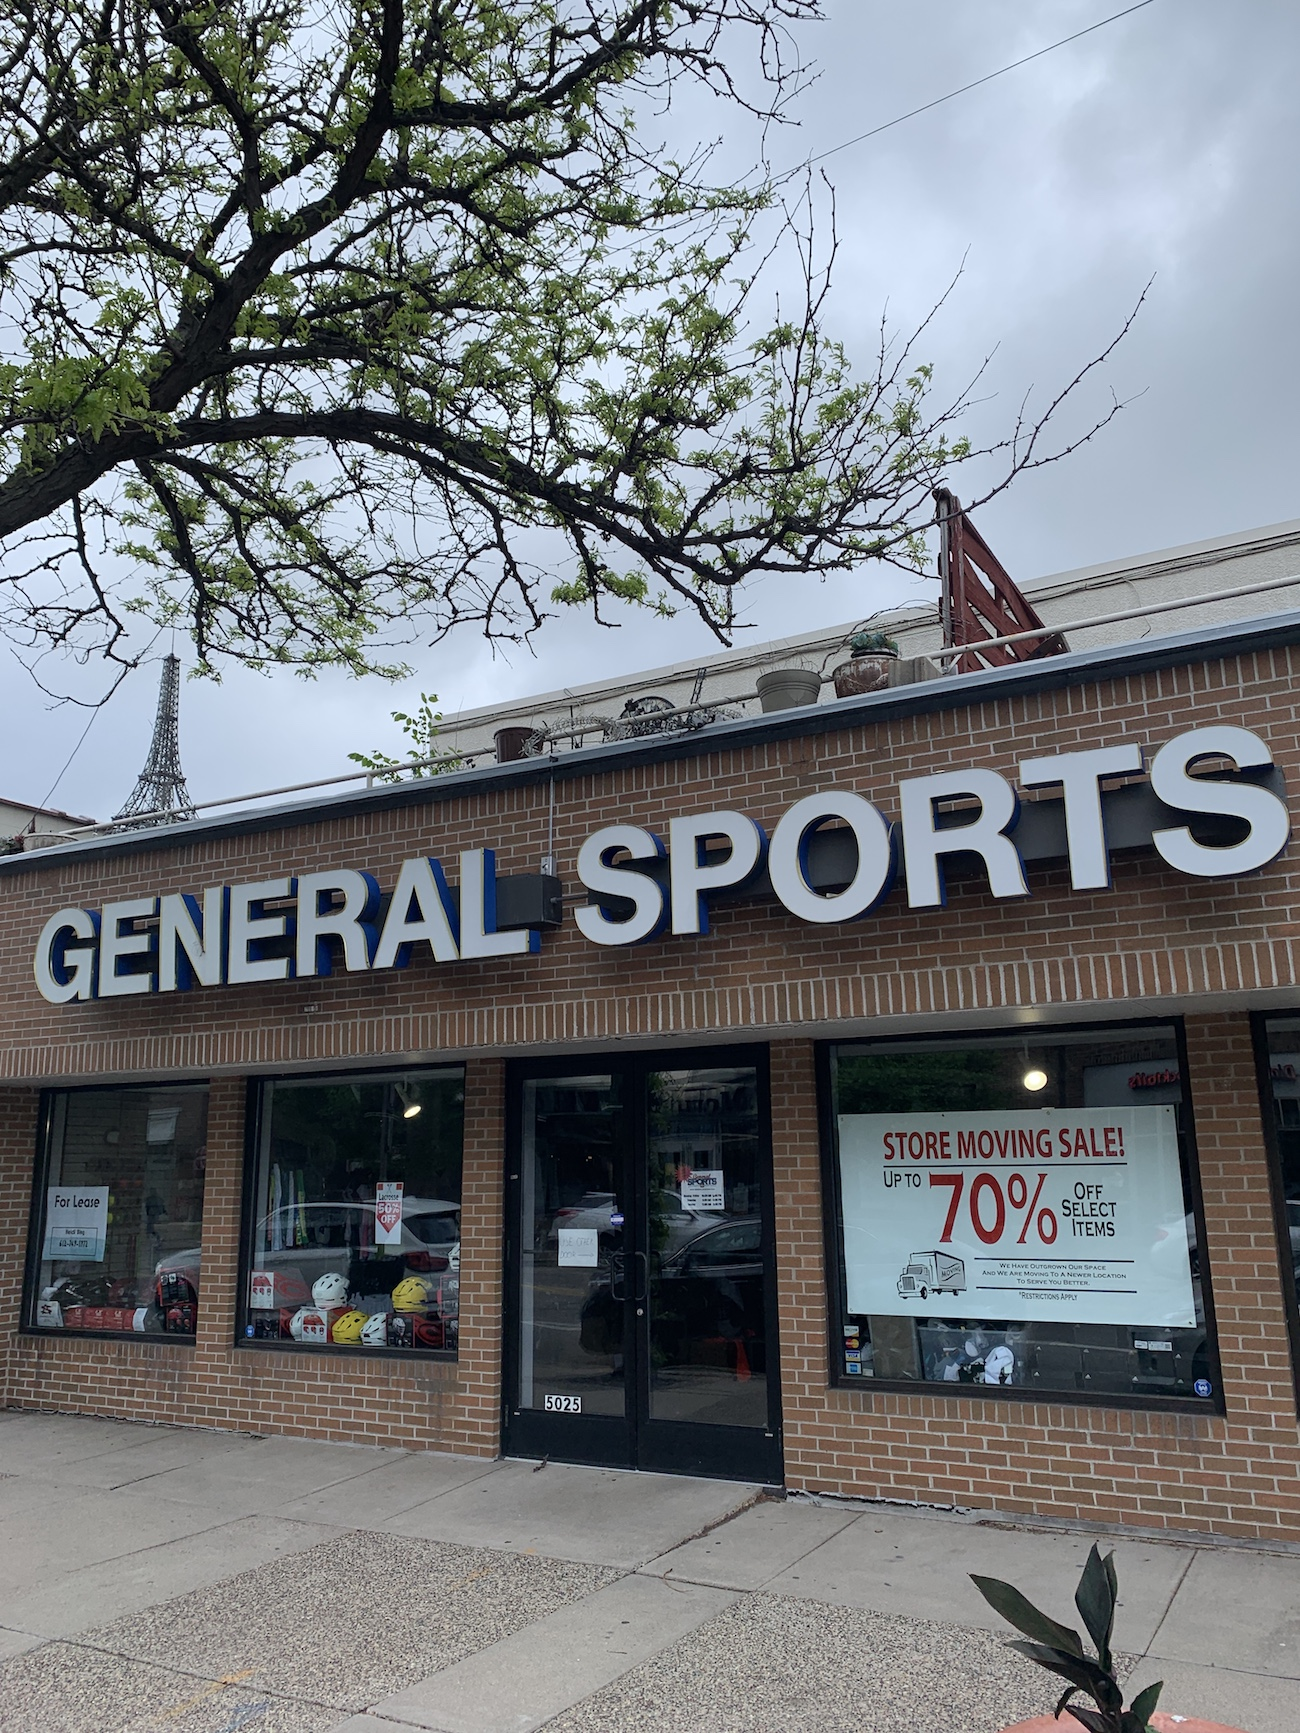 General Sports has sold sporting goods, sharpened skates, outfitted teams with uniforms and done letter jacket work on France Avenue since the 1970s.